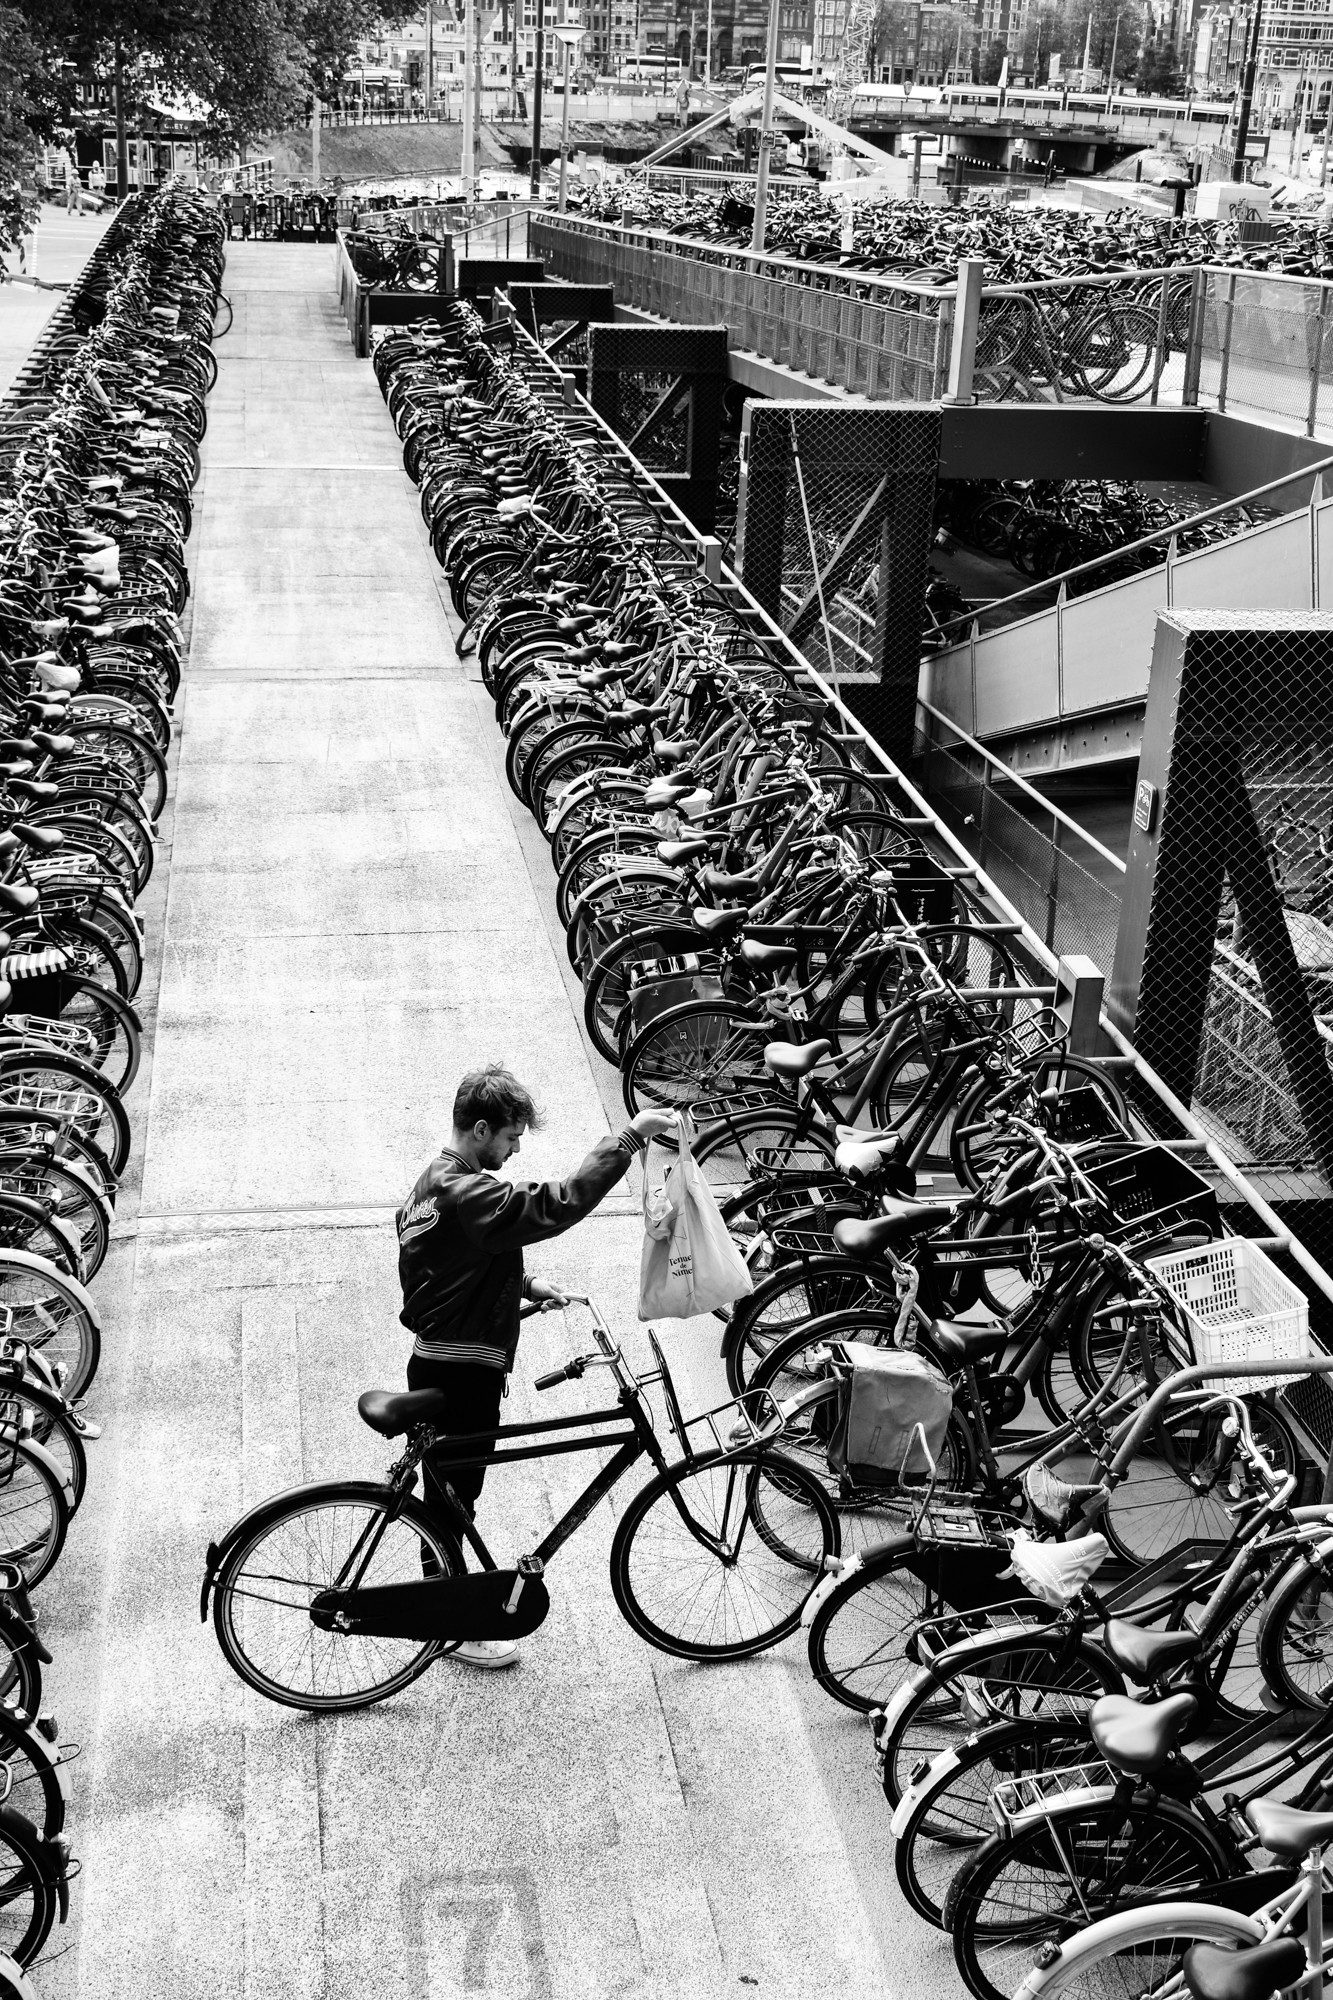 bike-parking-amsterdam-central-station